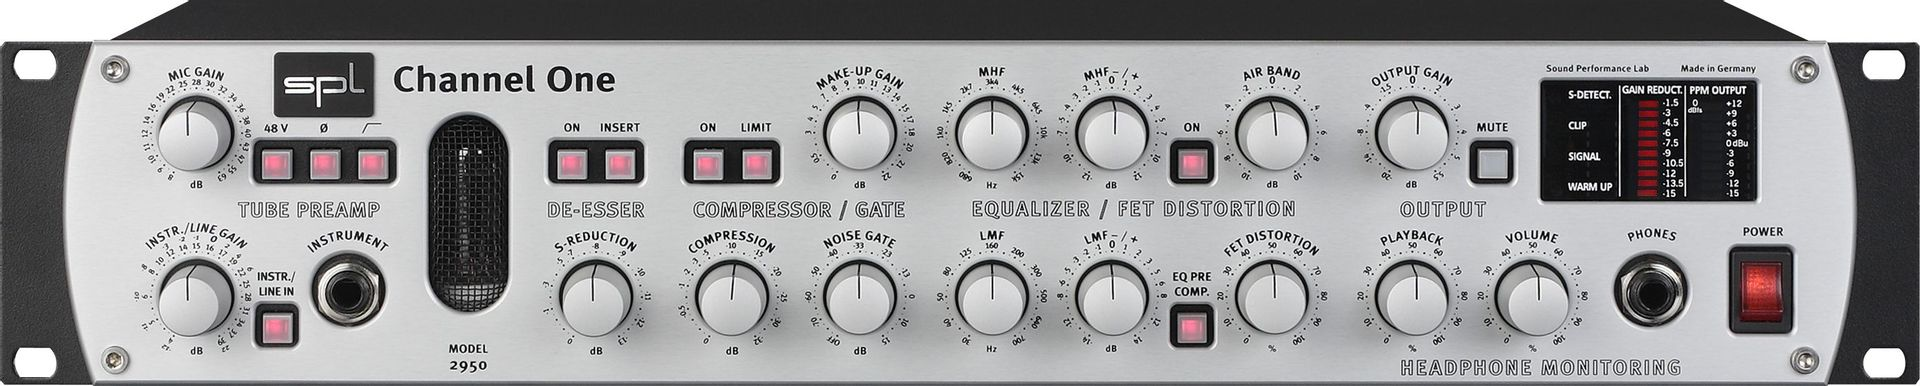 SPL Channel One 2950 Preamp